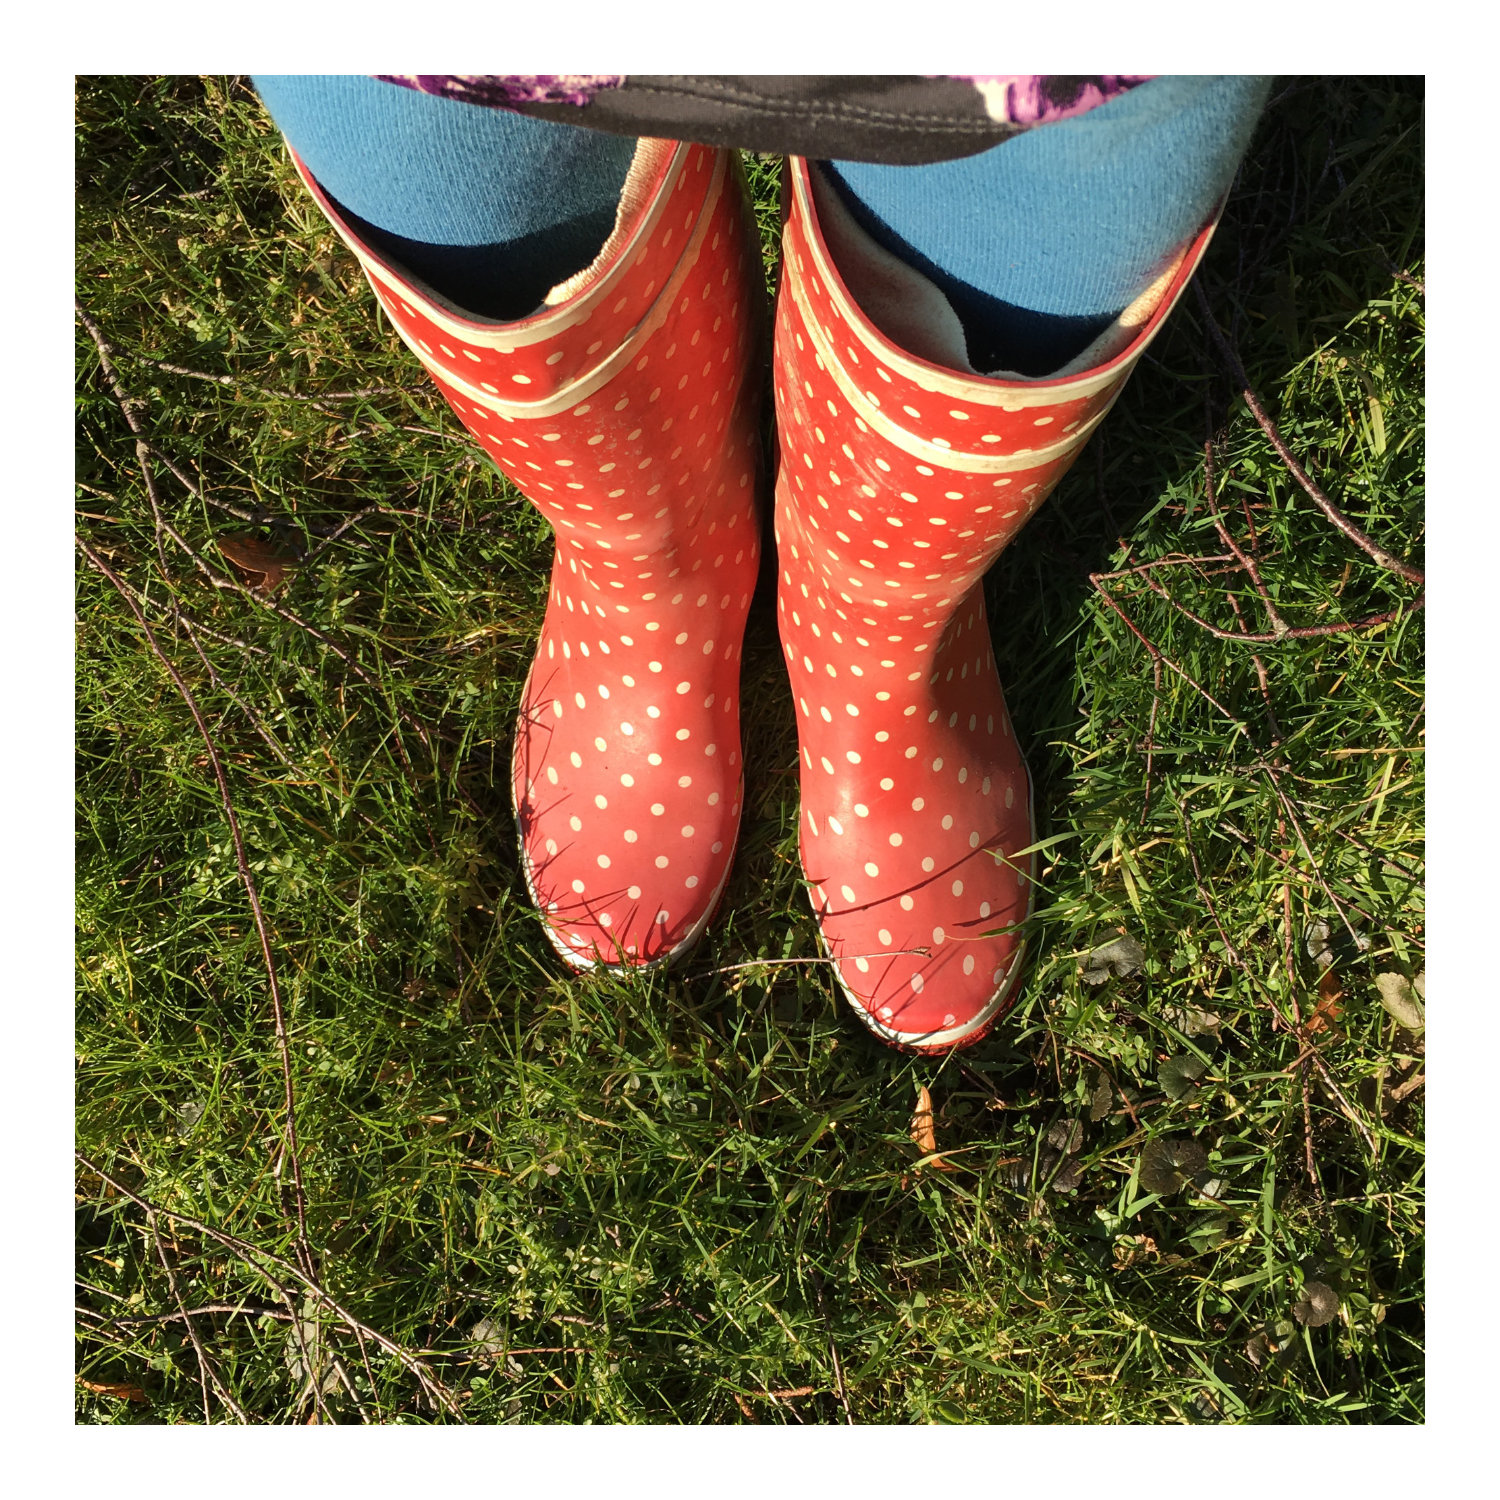 runber boots with polka dots.jpeg